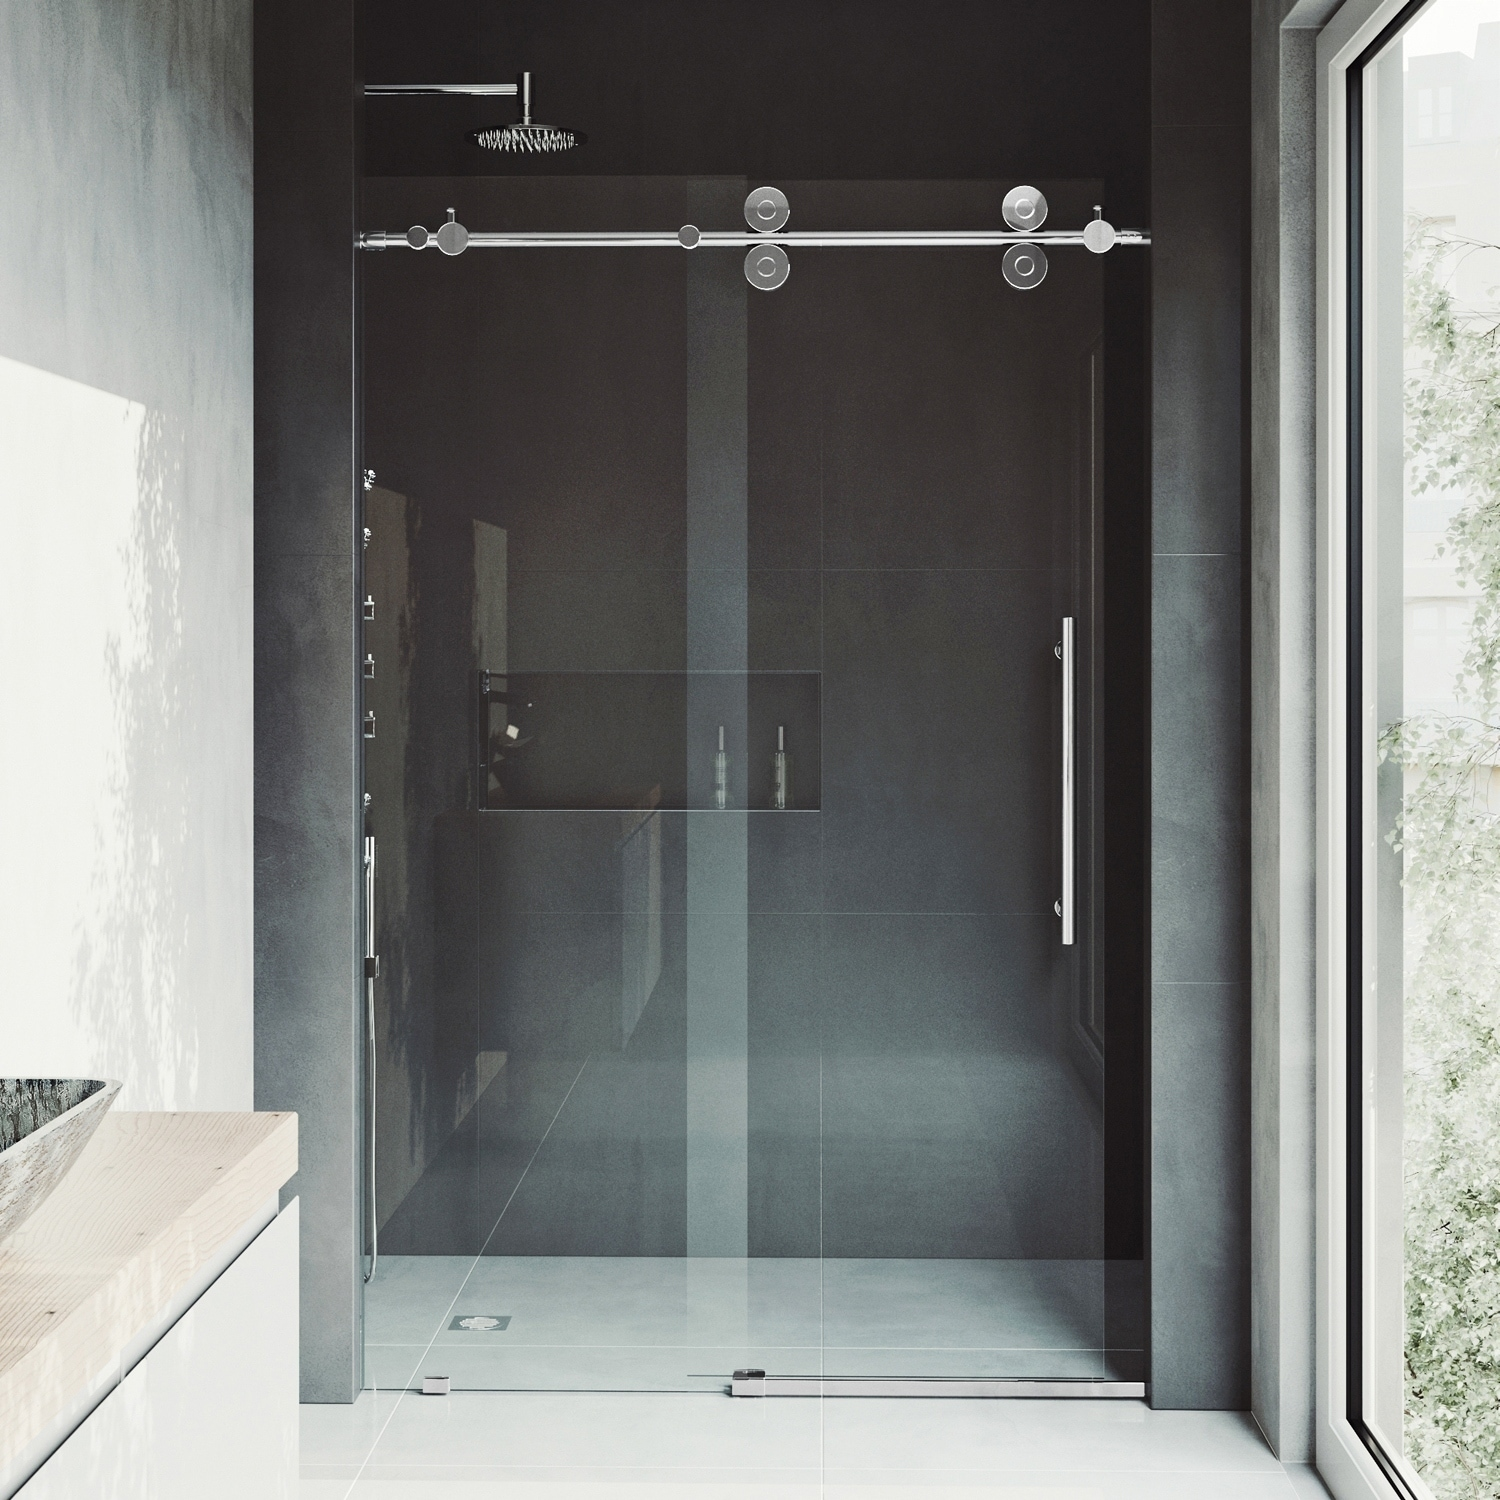 Vigo 60 inch clear glass frameless sliding shower door free vigo 60 inch clear glass frameless sliding shower door free shipping today overstock 12636331 planetlyrics Image collections